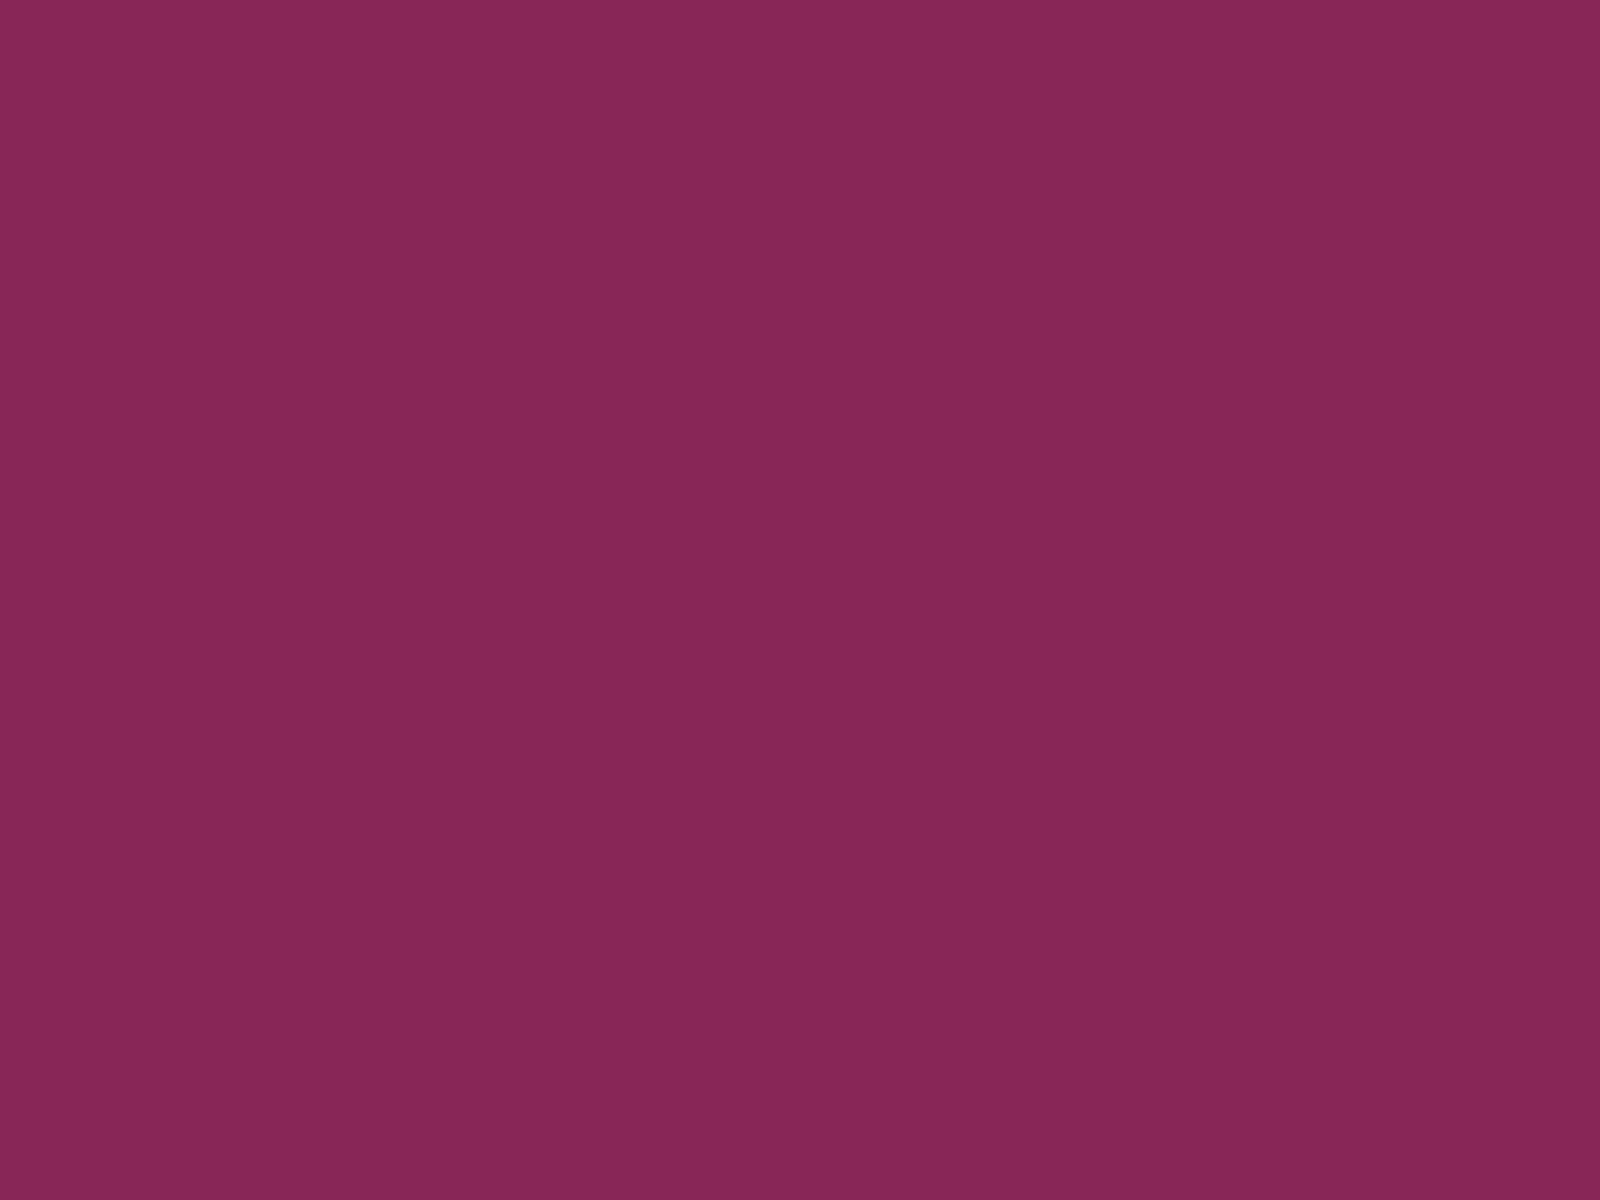 1600x1200 Dark Raspberry Solid Color Background